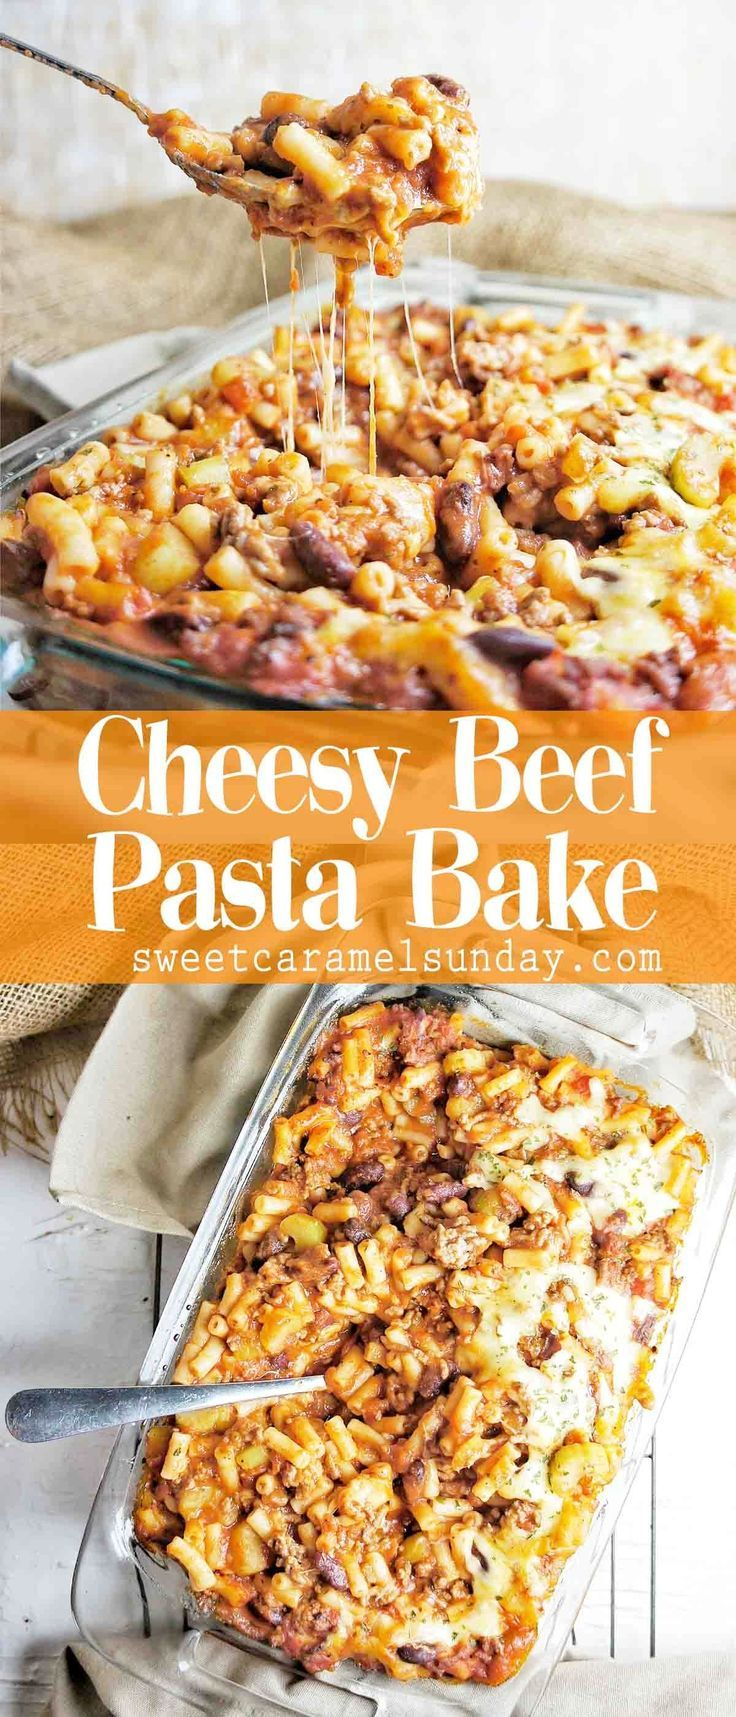 Cheesy Ground Beef Pasta Bake In A Rich Tomato Sauce Oven Baked To Perfection Cheese Easy Pasta Dinn Recipes Delicious Healthy Recipes Easy Dinner Recipes